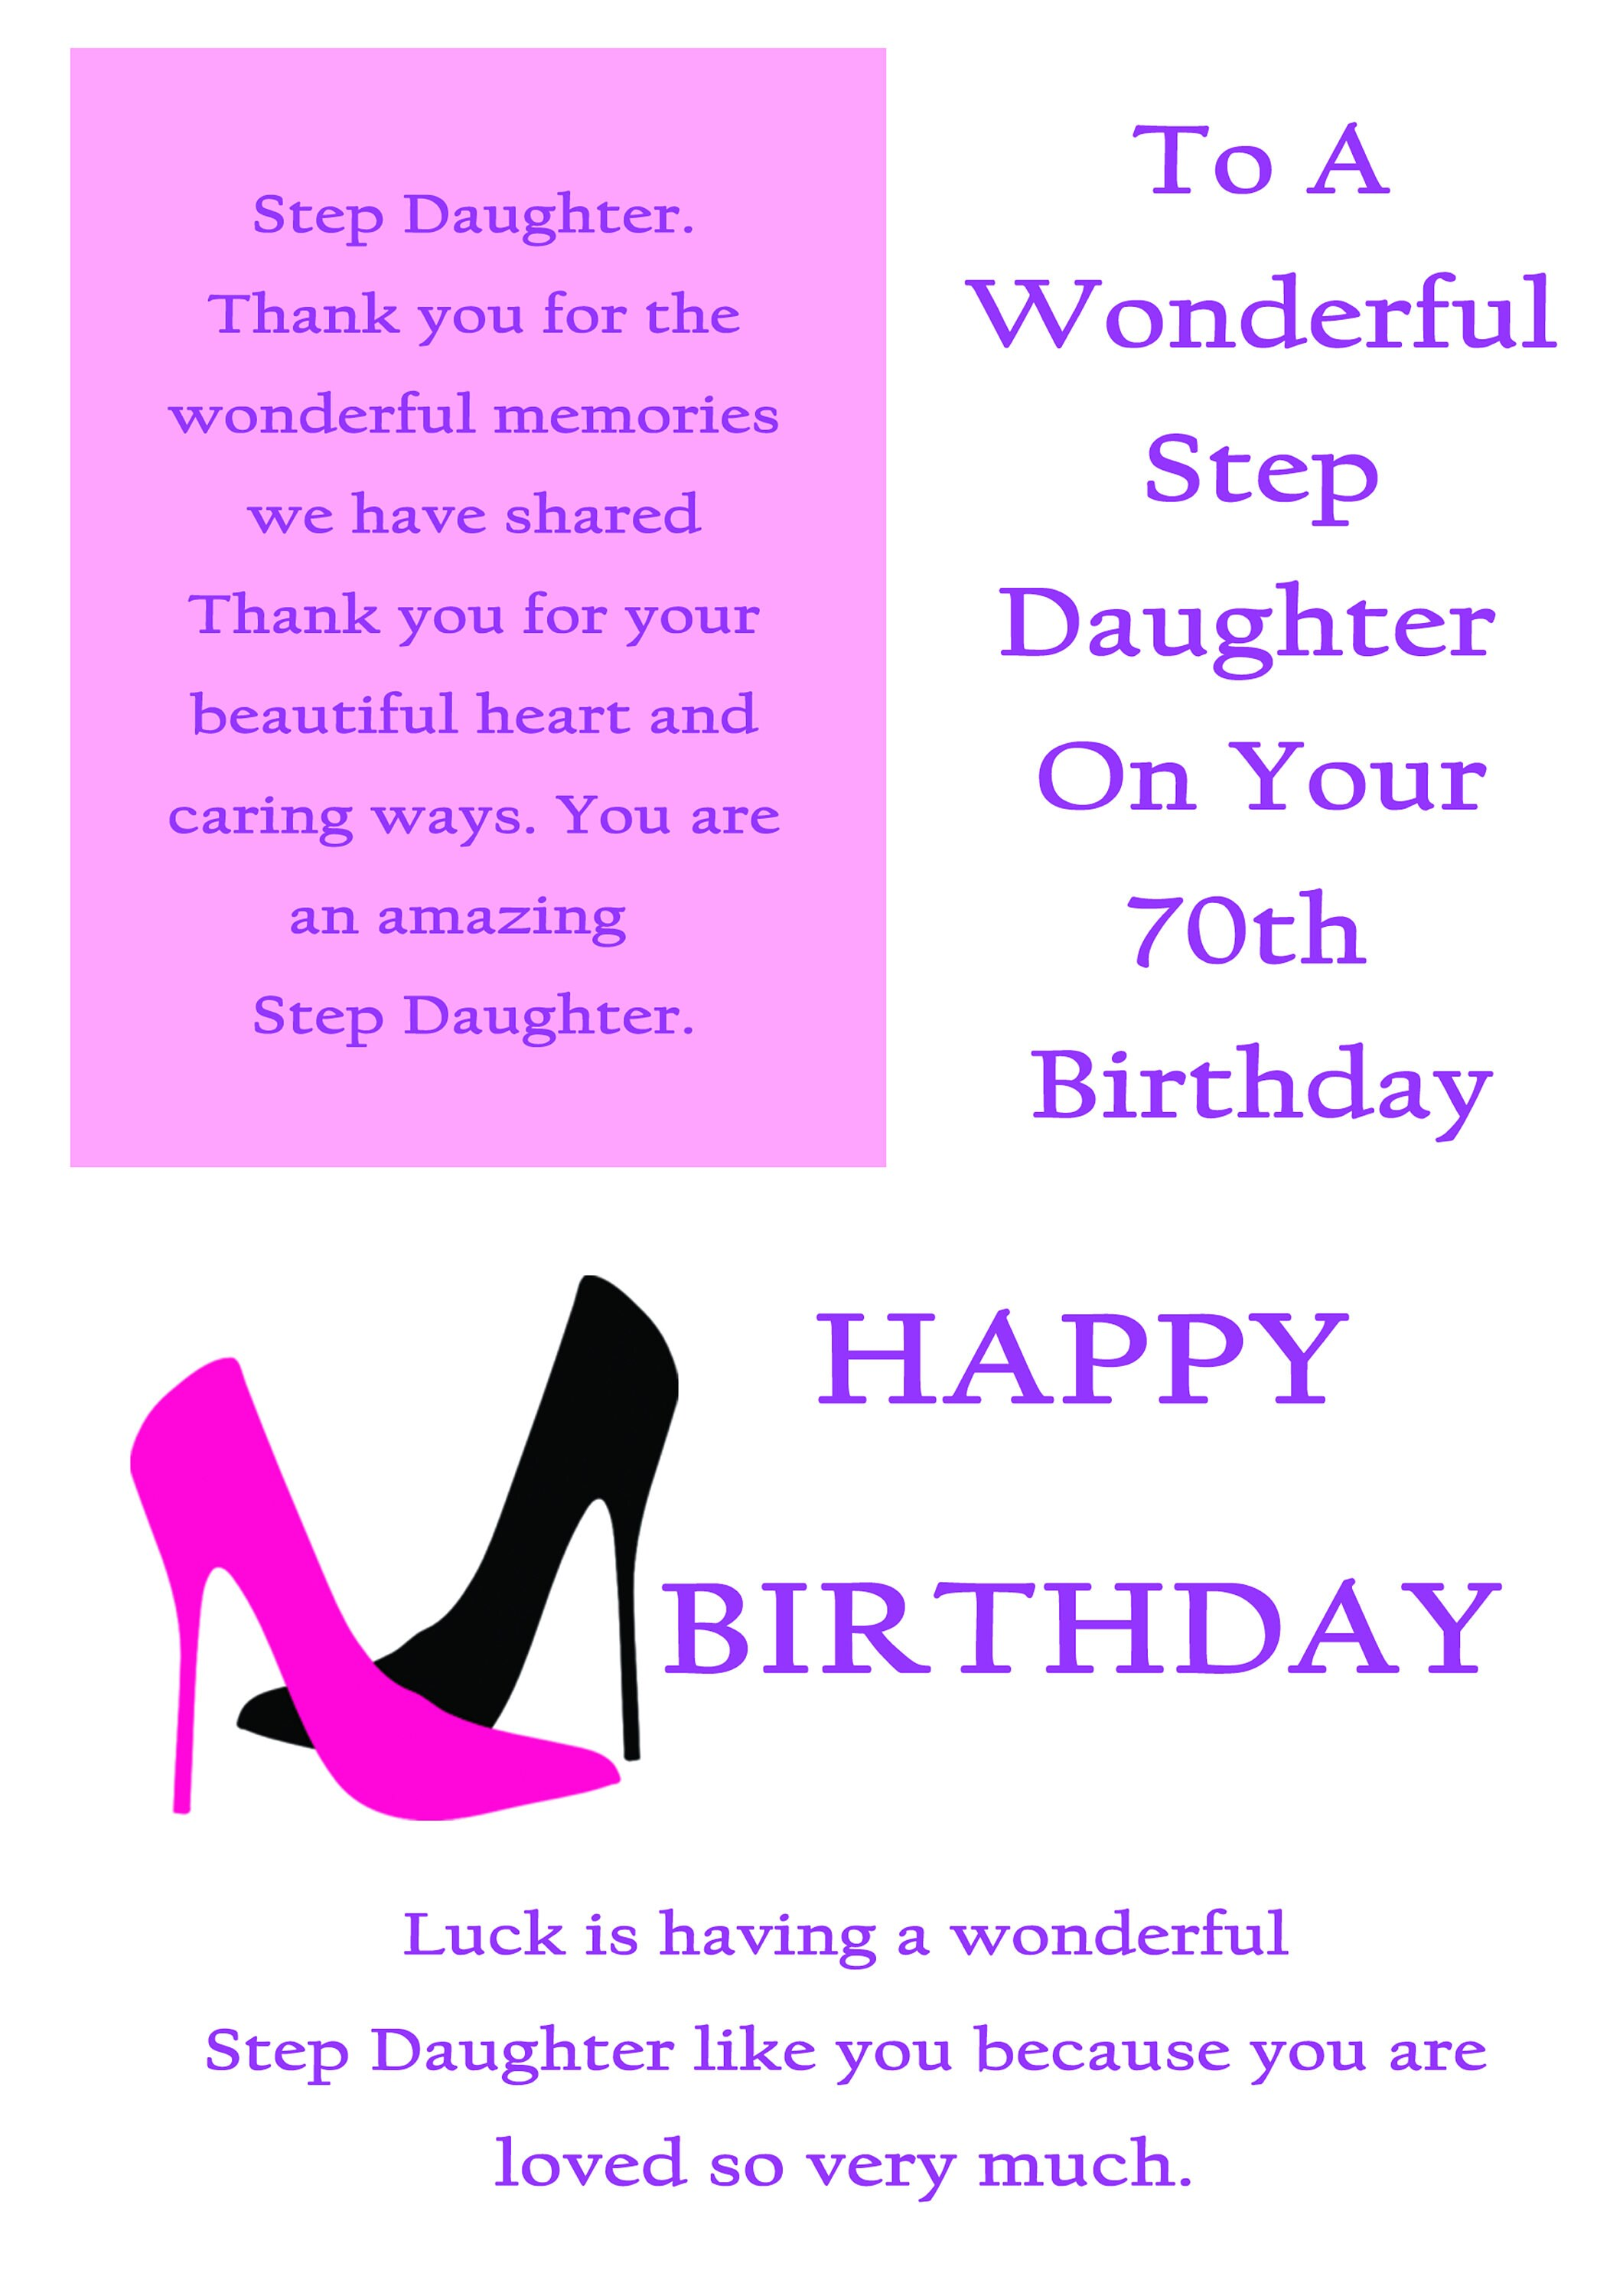 Step Daughter 70 Birthday Card With Removable Laminate